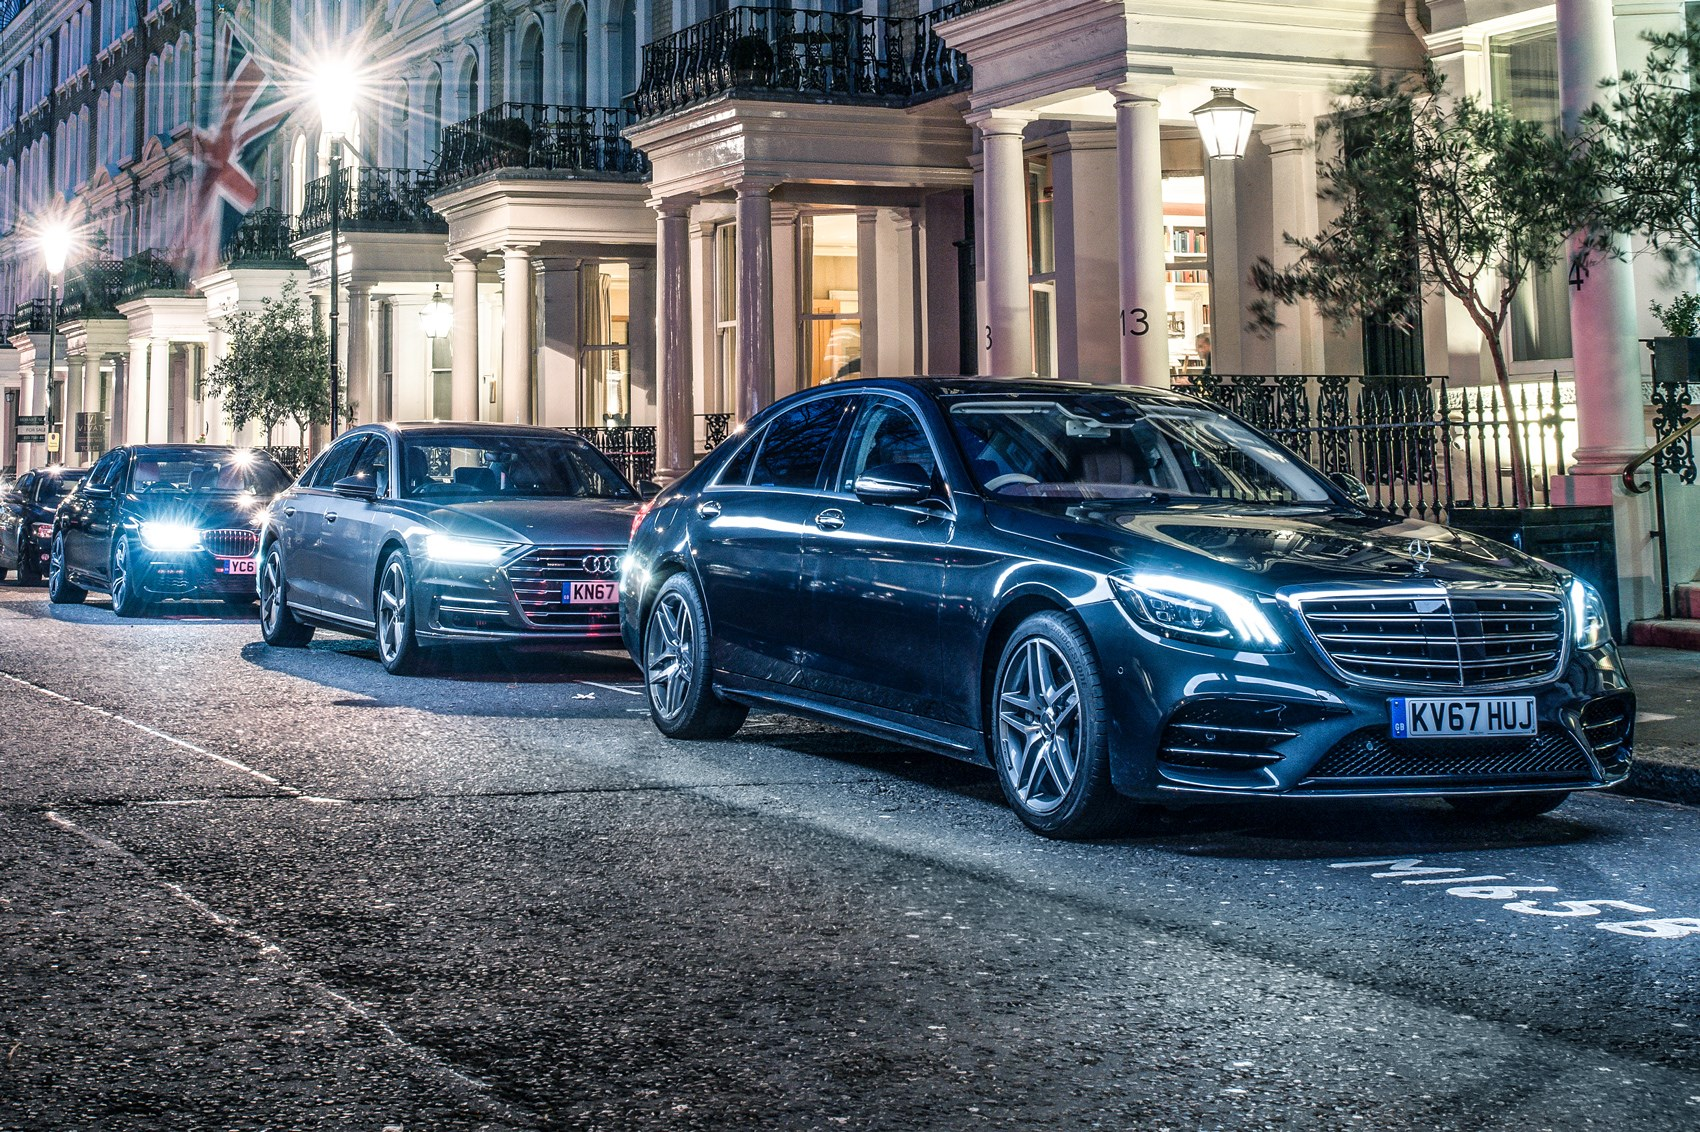 Mercedes Sclass Vs Audi A Vs BMW Series Triple Test - Bmw vs audi